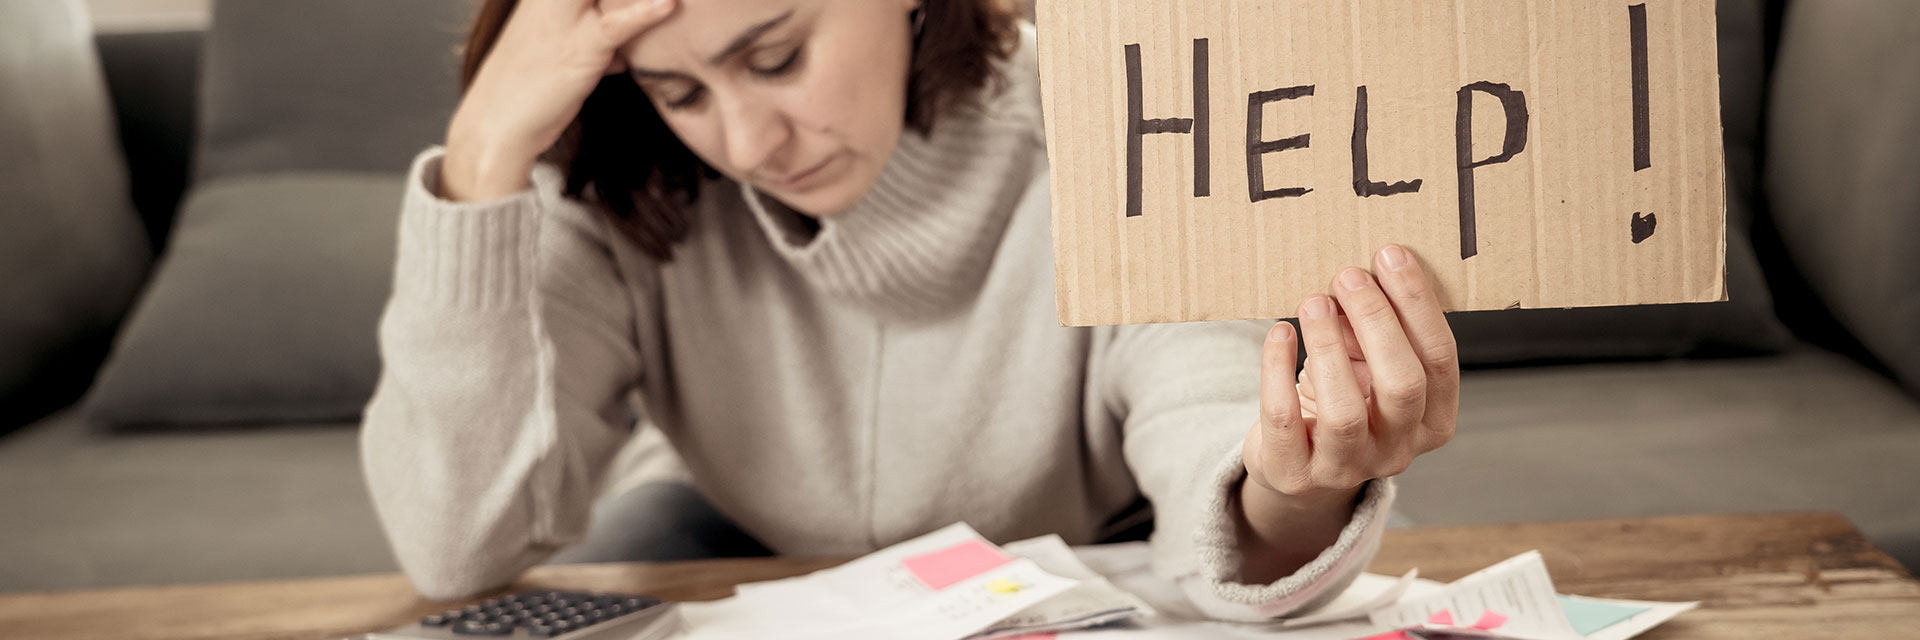 Woman stressed out filing an insurance claim holding up a sign saying Help